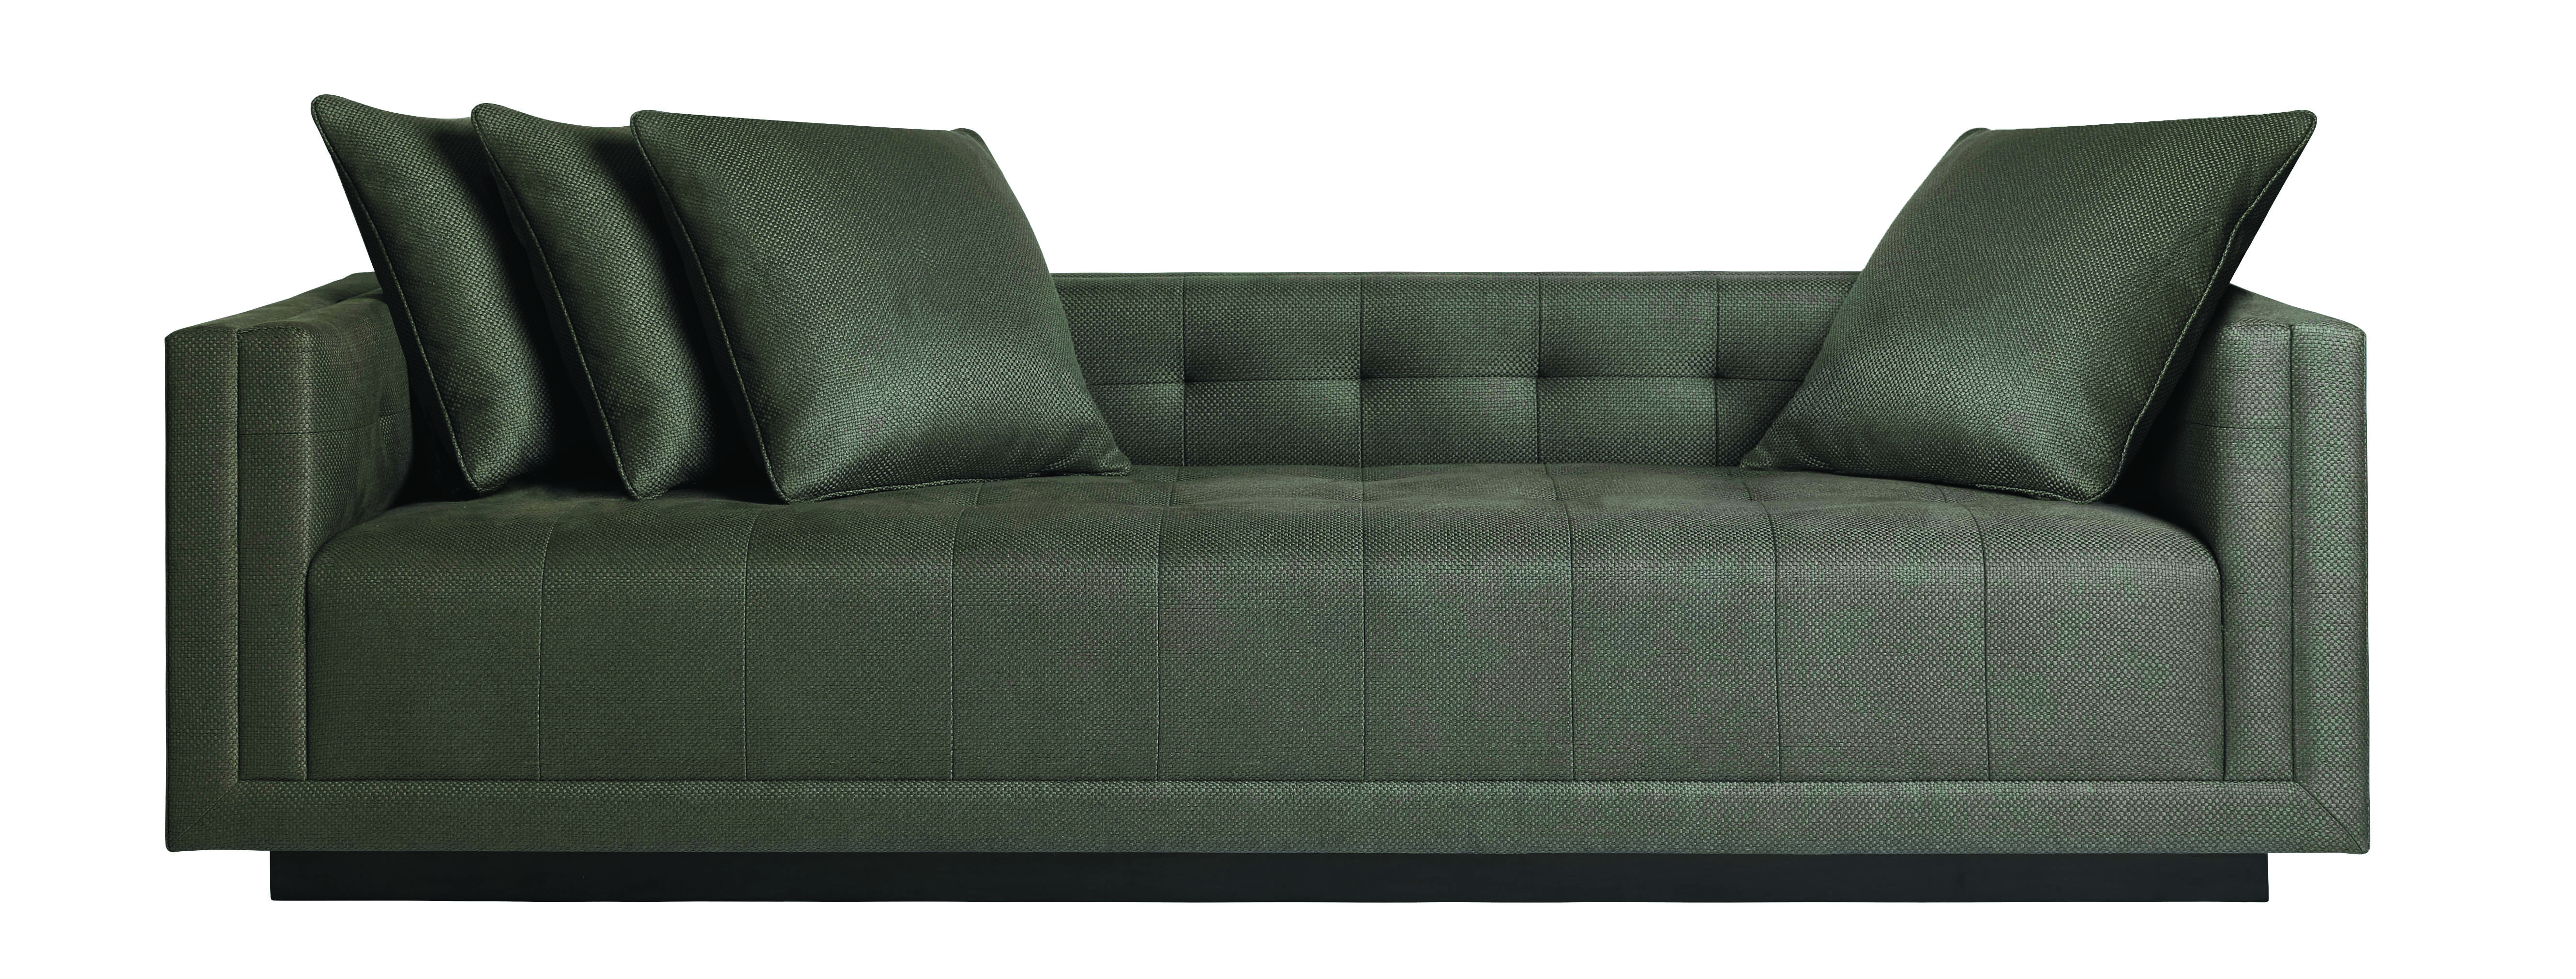 a rudin sofa 2859 council collection bristol the new jeff andrews ad360